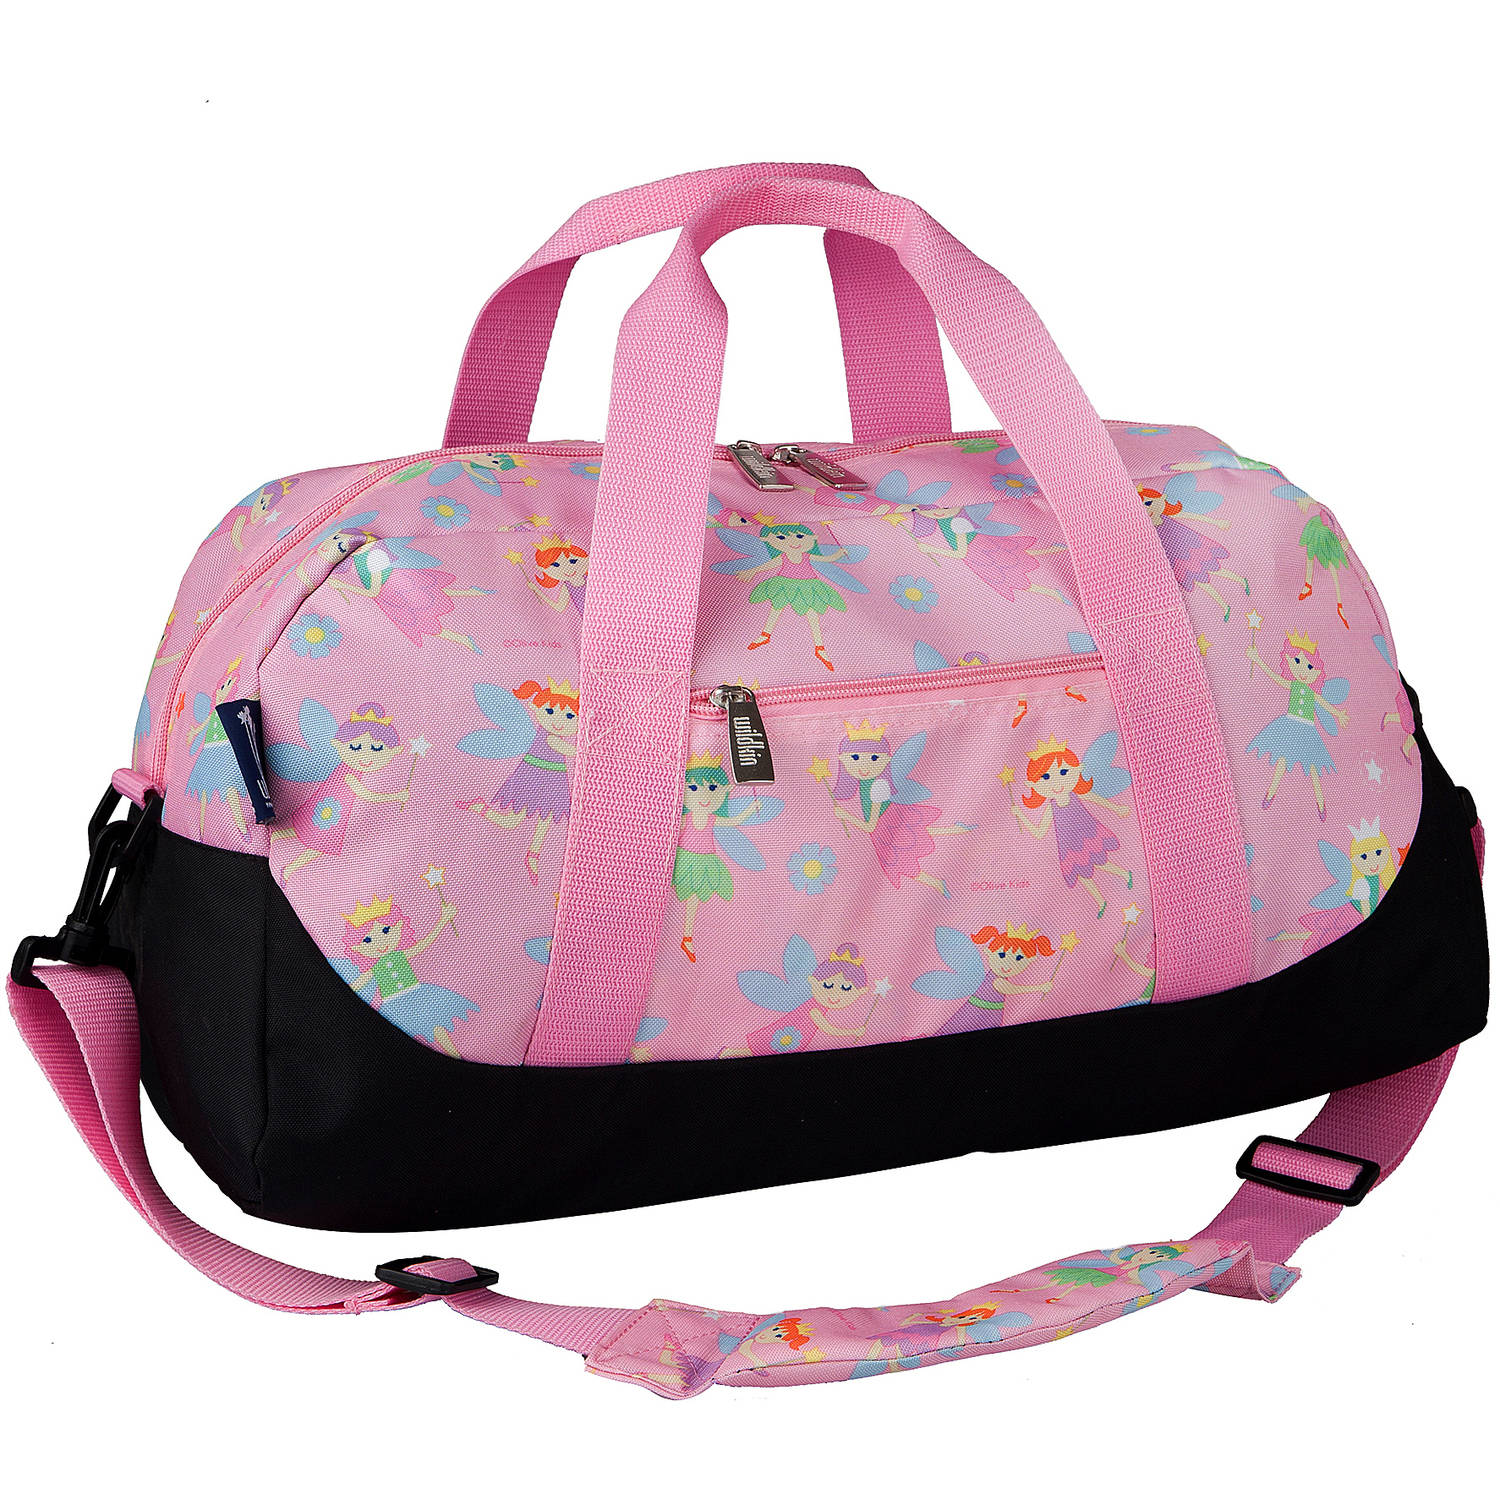 Olive Kids Fairy Princess Overnighter Duffel Bag by Wildkin